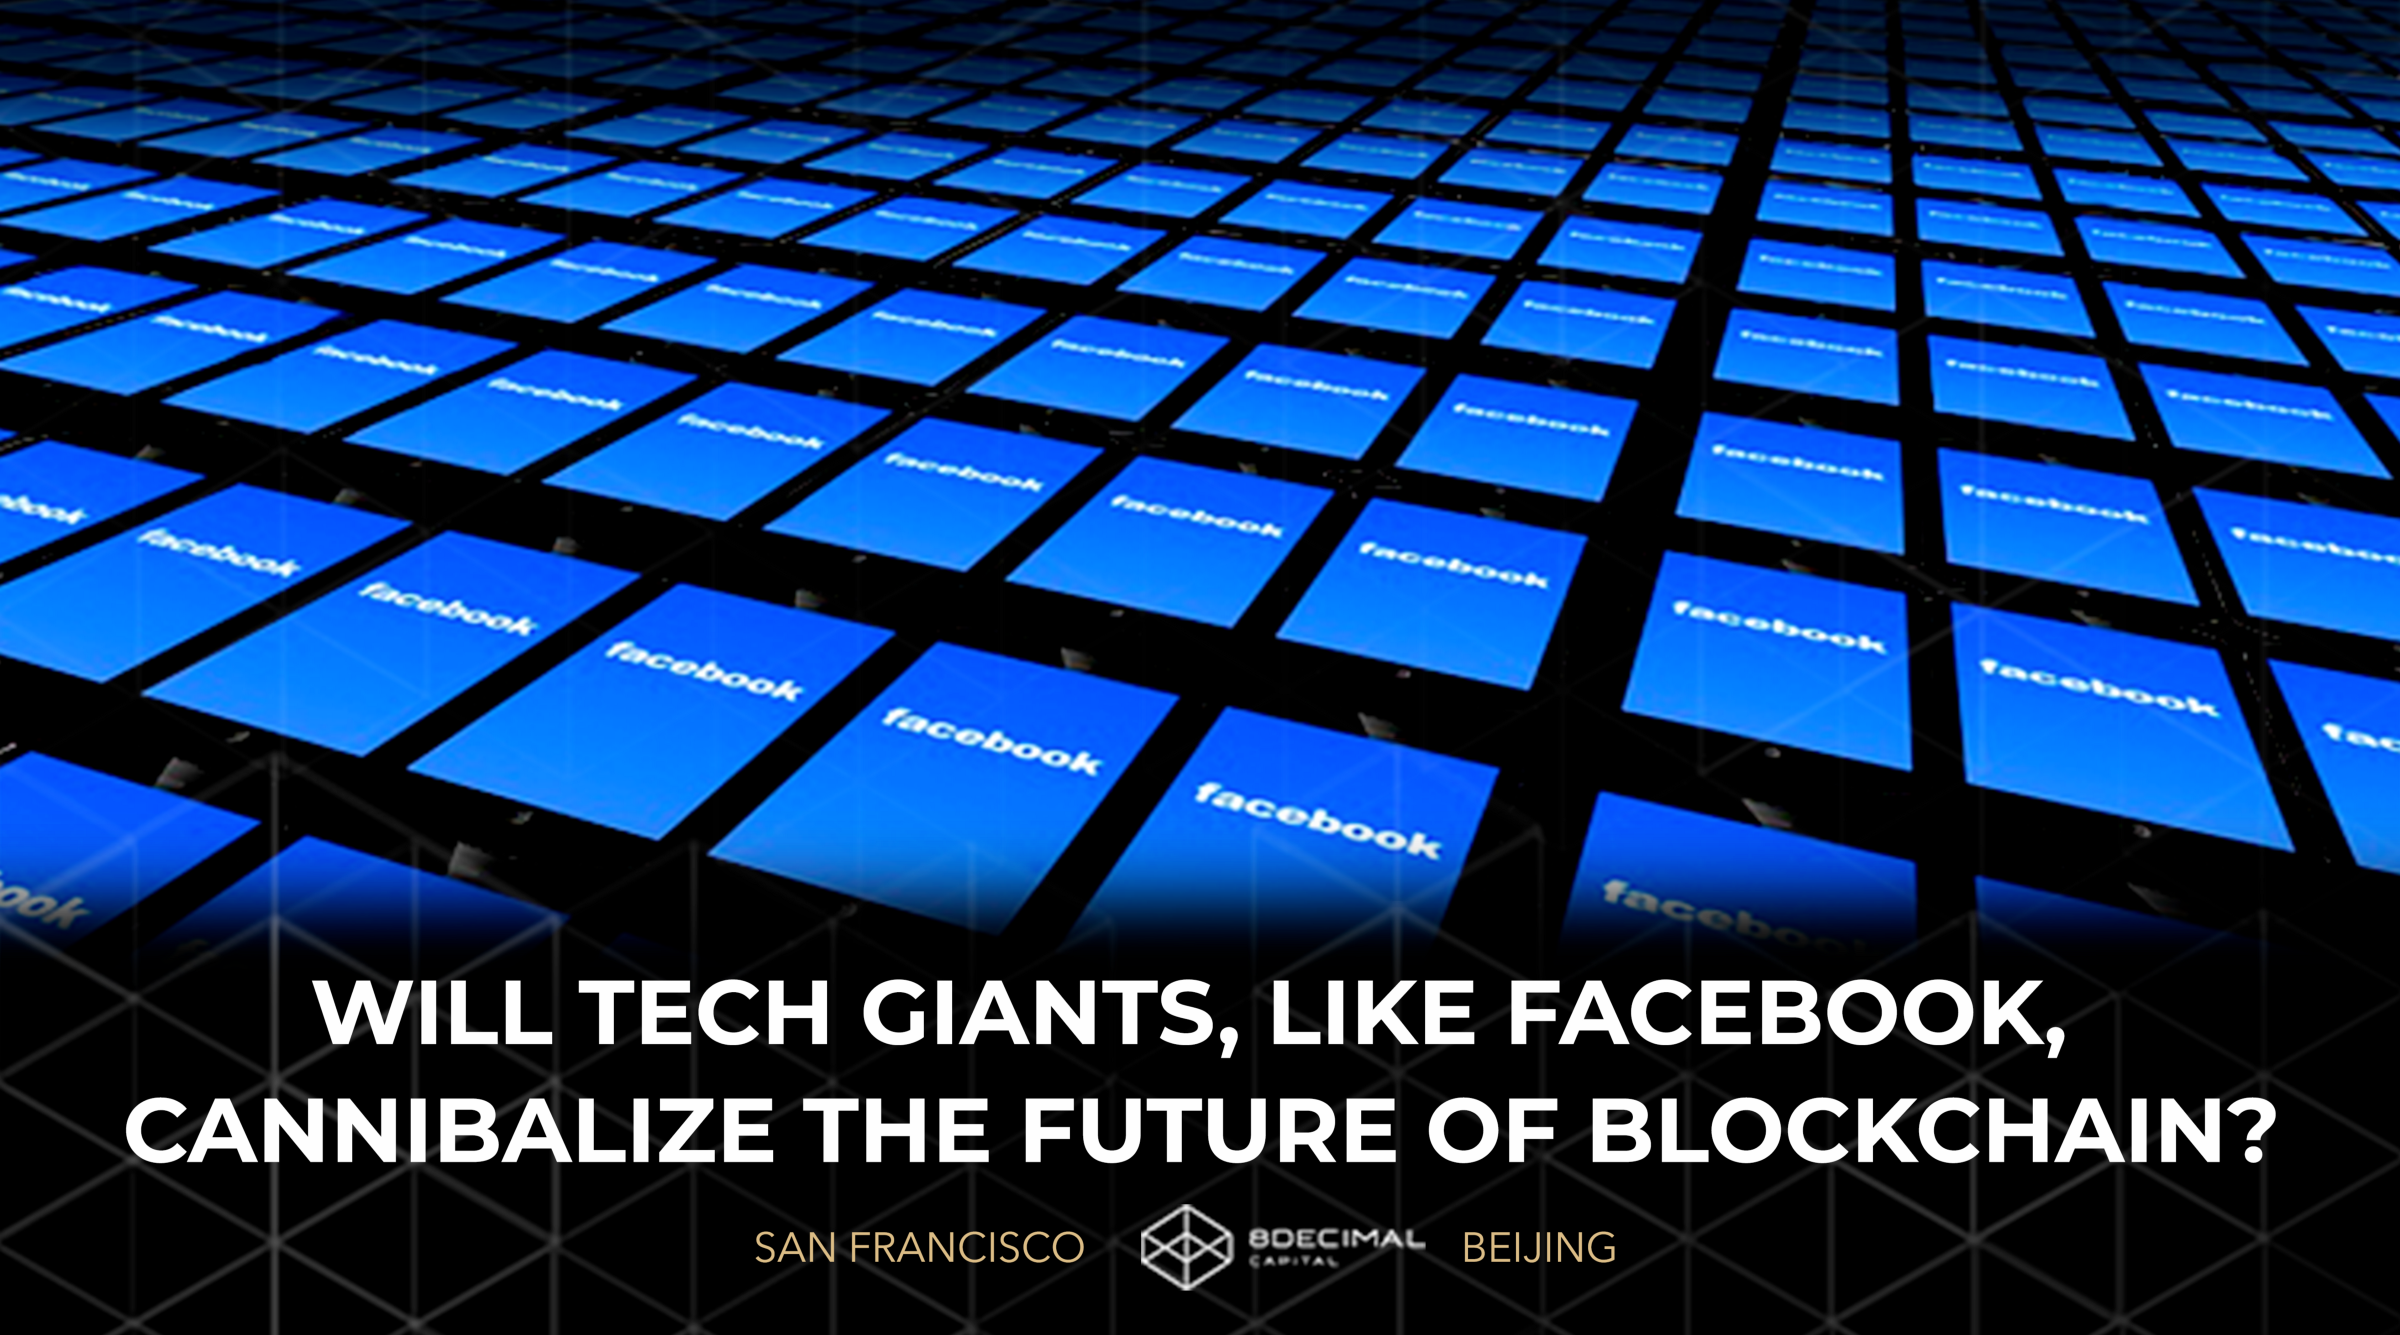 Could Facebook Cannibalize the Future of Blockchain? - By 8